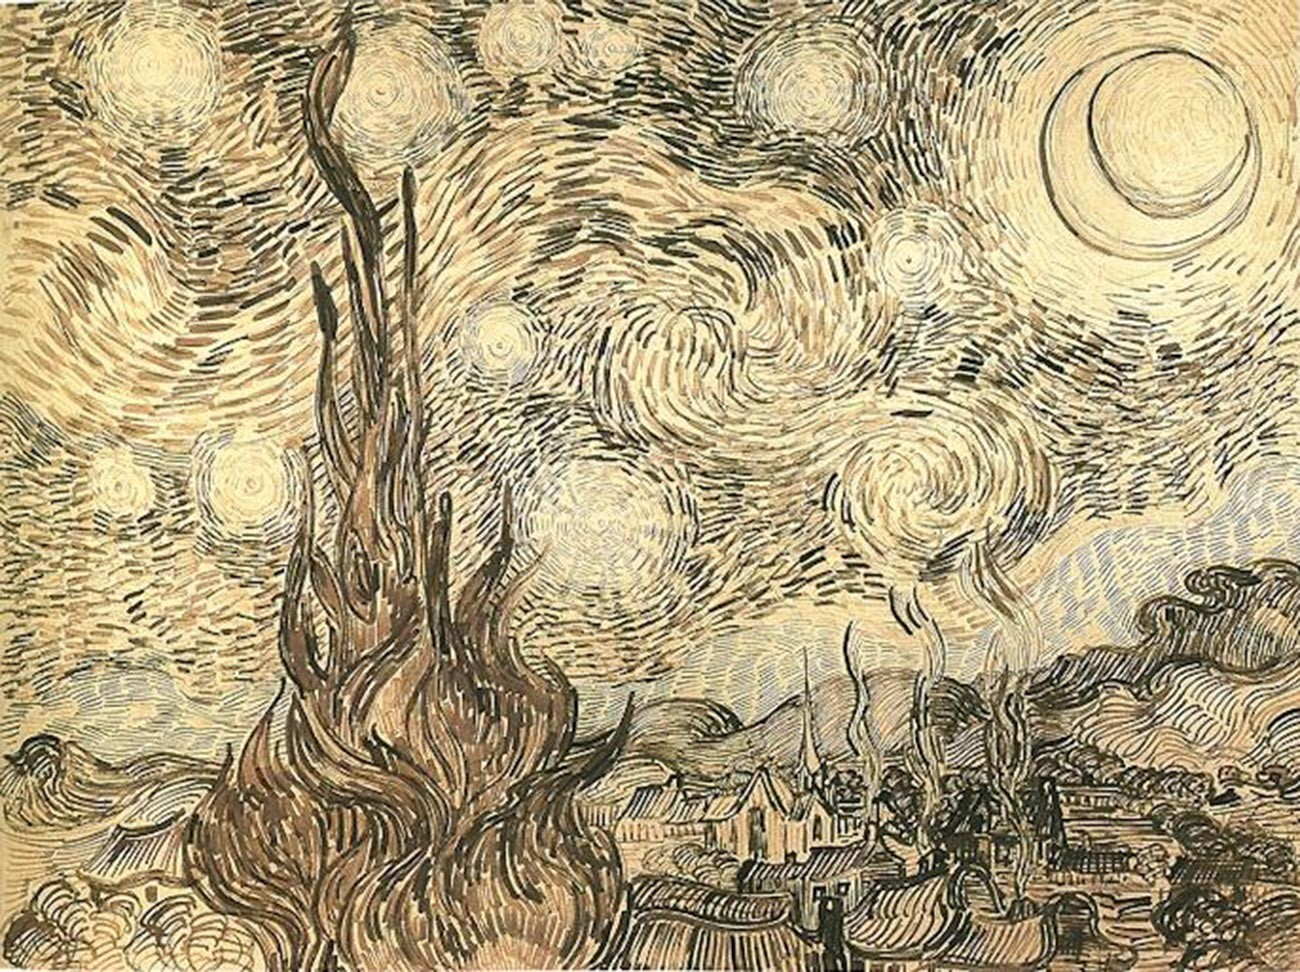 Vincent van Gogh. The Starry Night (drawing)